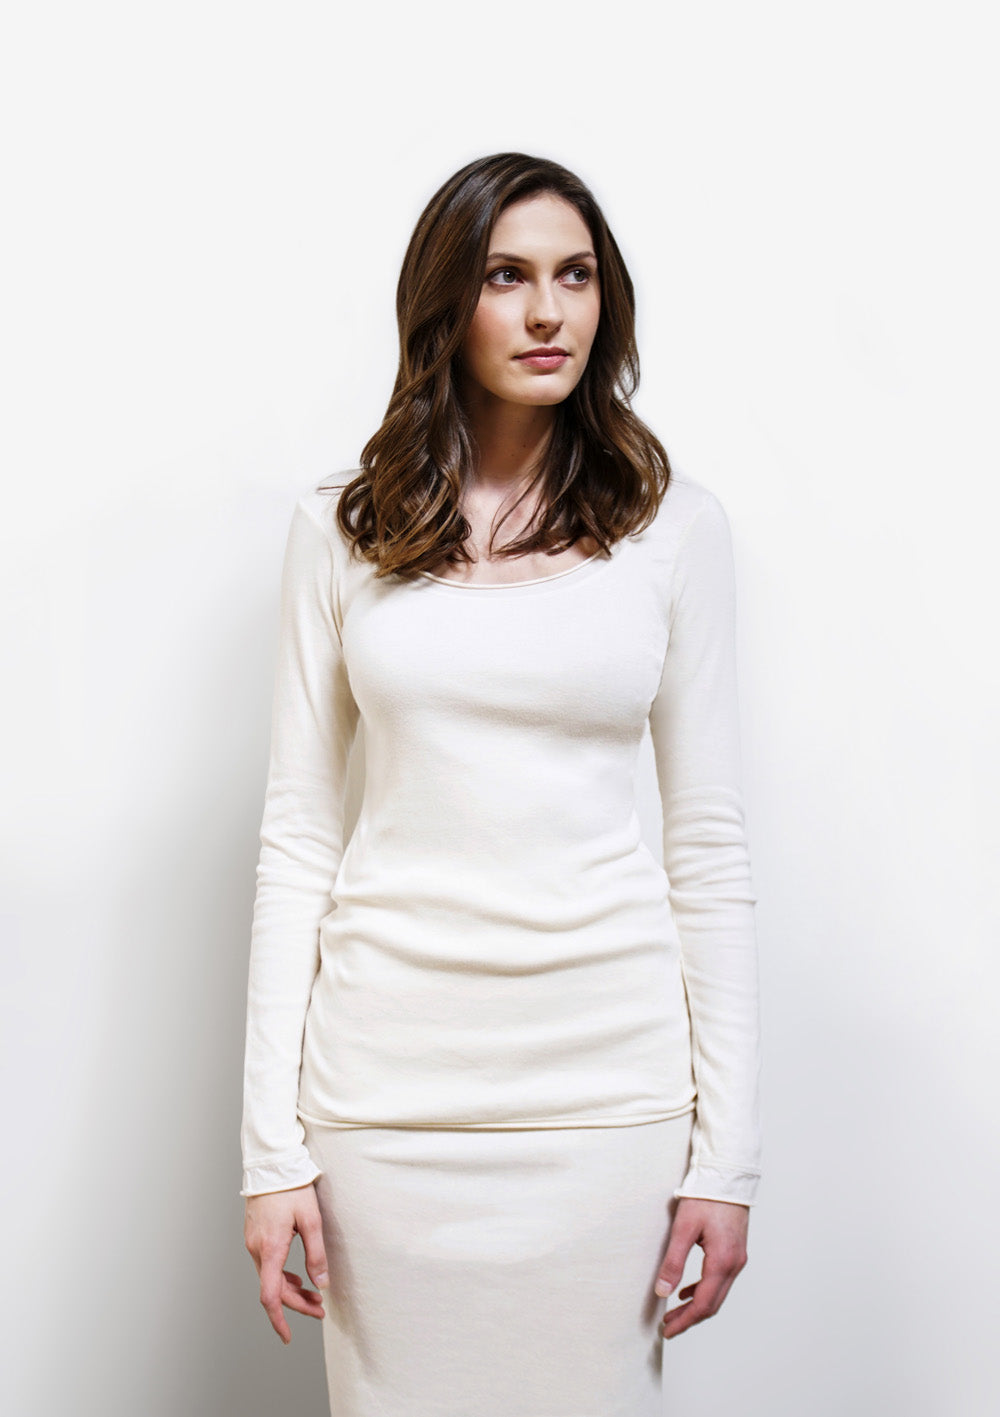 Alabama Chanin The Essential Rib Top Organic Cotton Rib Top with Long Sleeves in White on Model